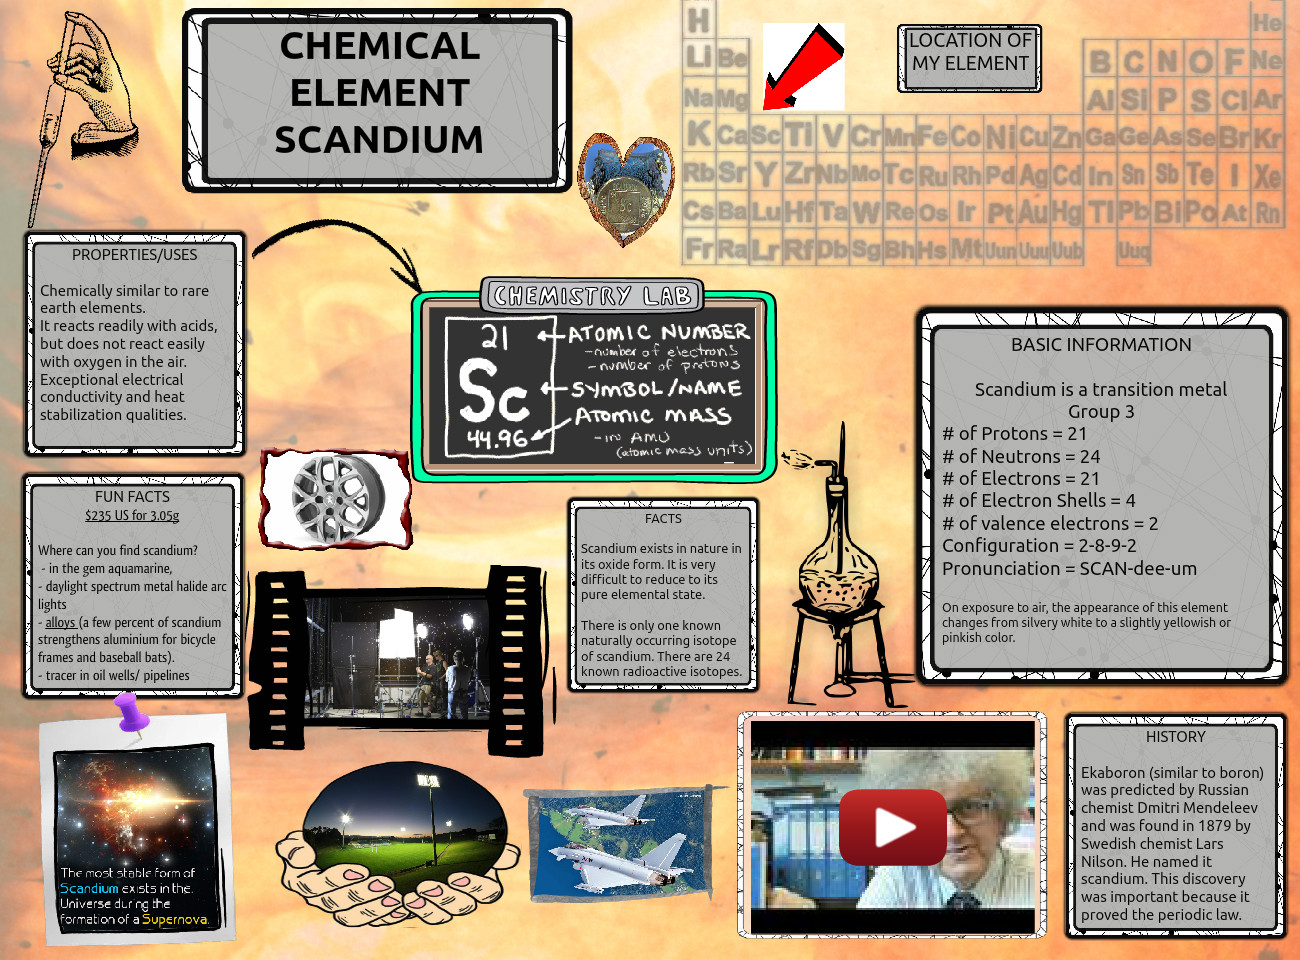 Chemical Element - Scandium